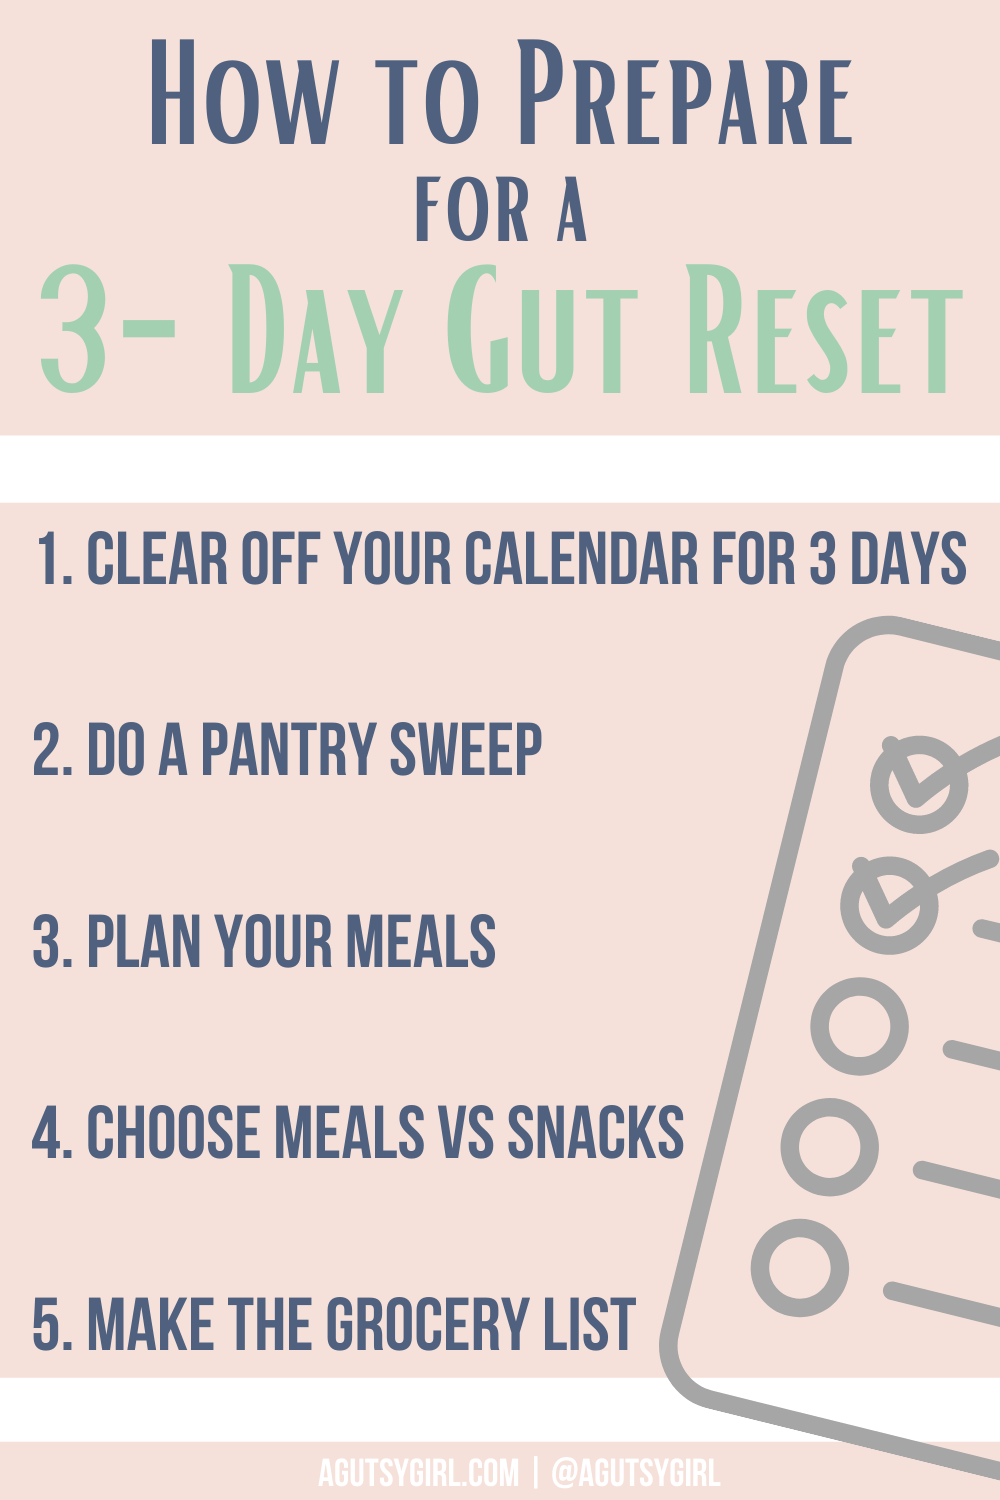 Why Does My Stomach Hurt agutsygirl.com #3daygutreset #gutreset #guthealth How to prepare for a 3-day gut reset